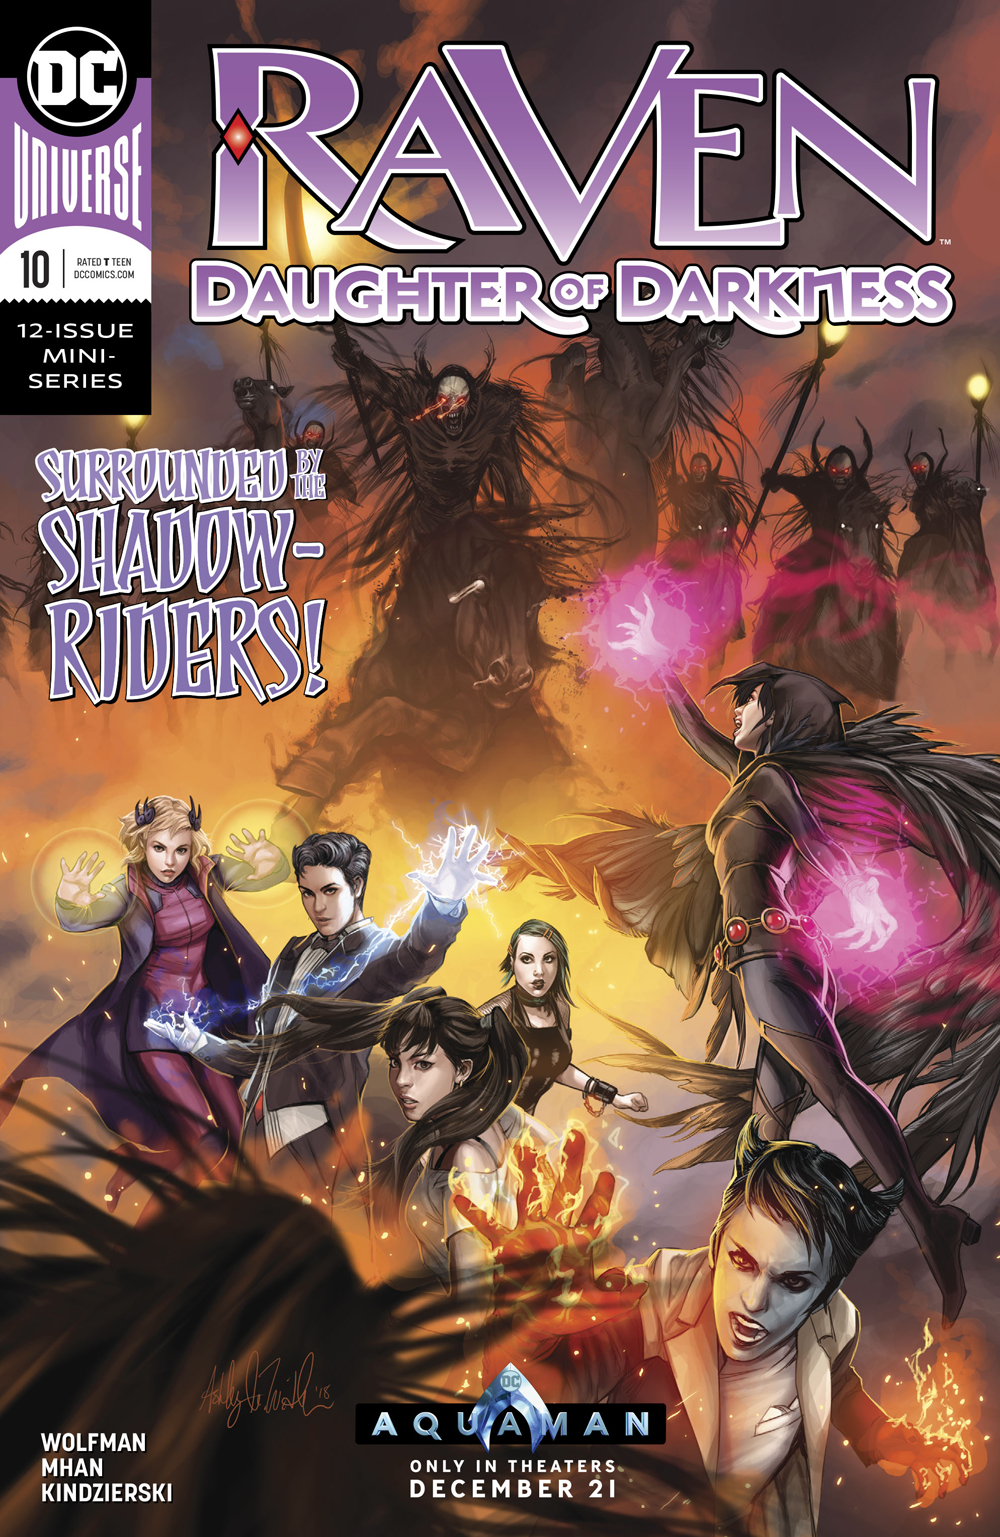 RAVEN DAUGHTER OF DARKNESS #10 (OF 12)